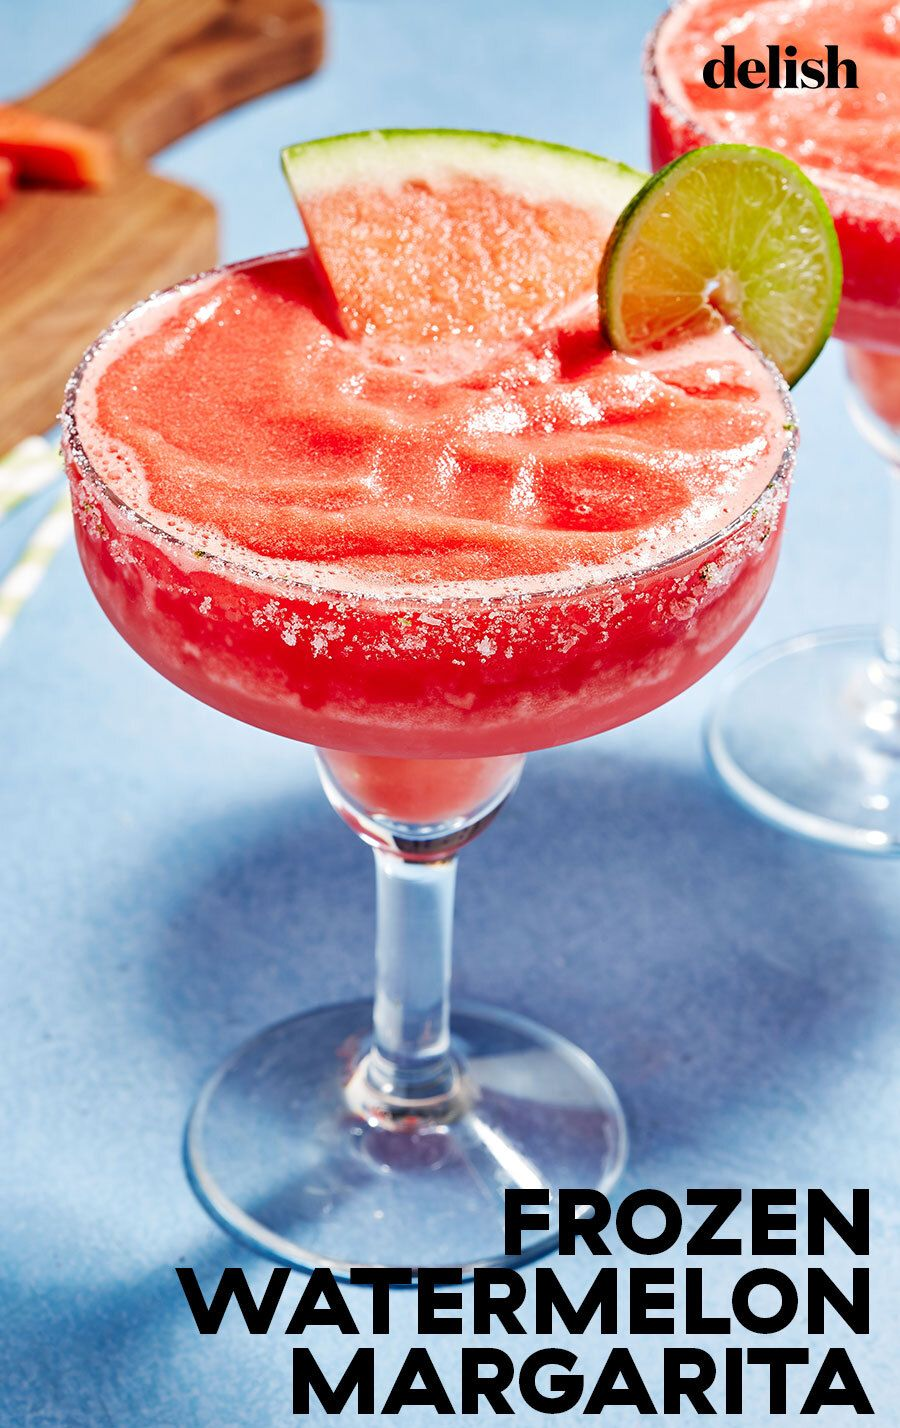 Frozen Watermelon Margaritas The Perfect Summer Cocktail Recipe In 2020 Frozen Watermelon Watermelon Margarita Frozen Watermelon Margarita